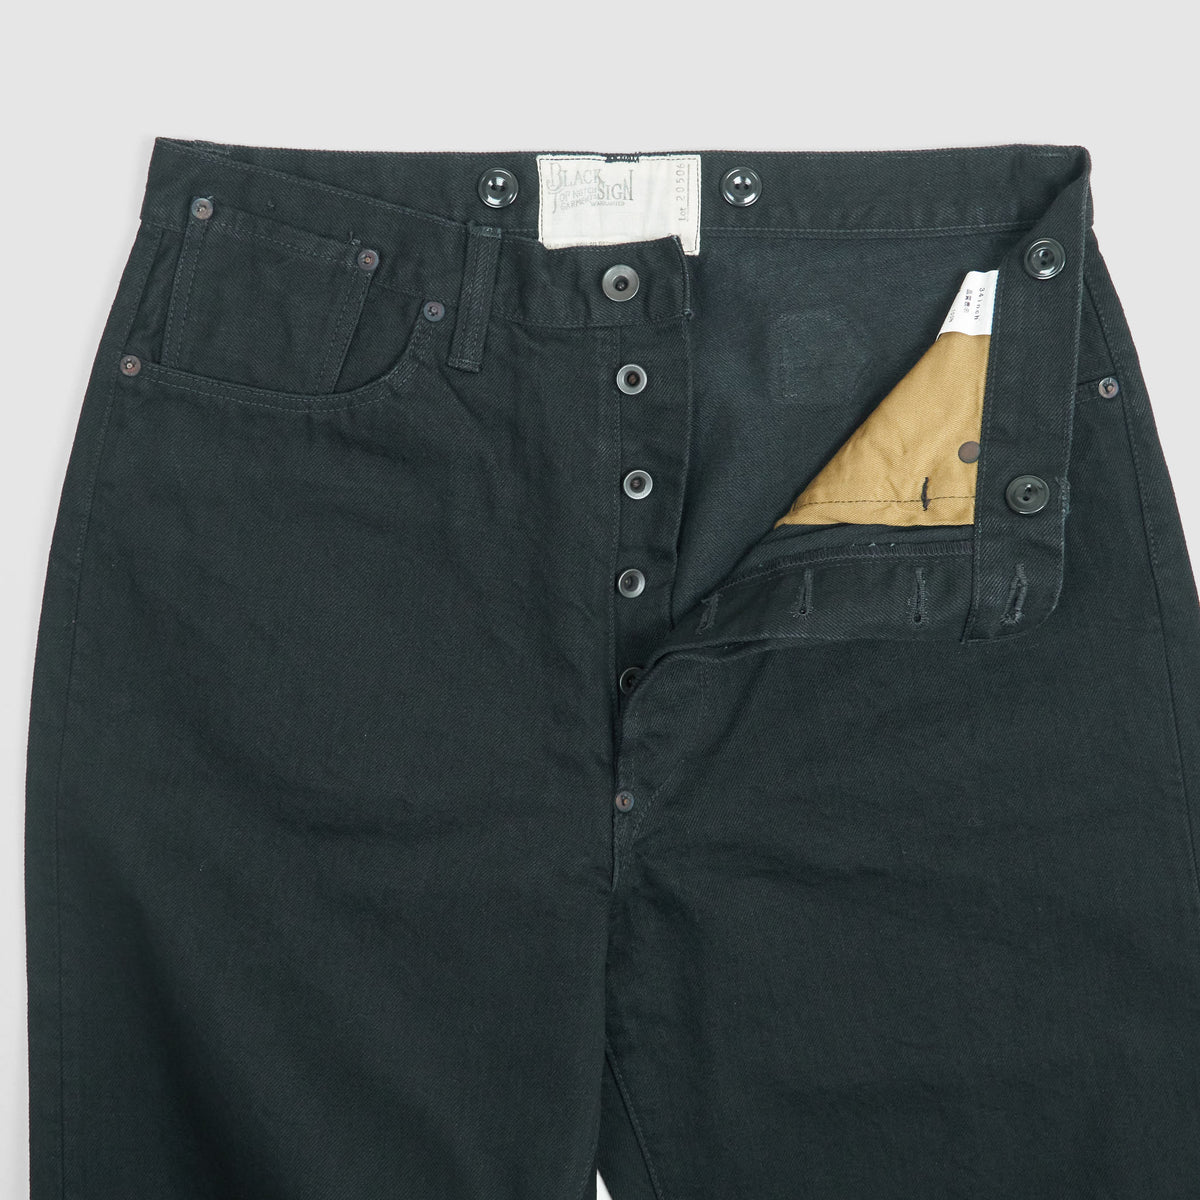 Black Sign Denim Type1 Black Denim Jeans